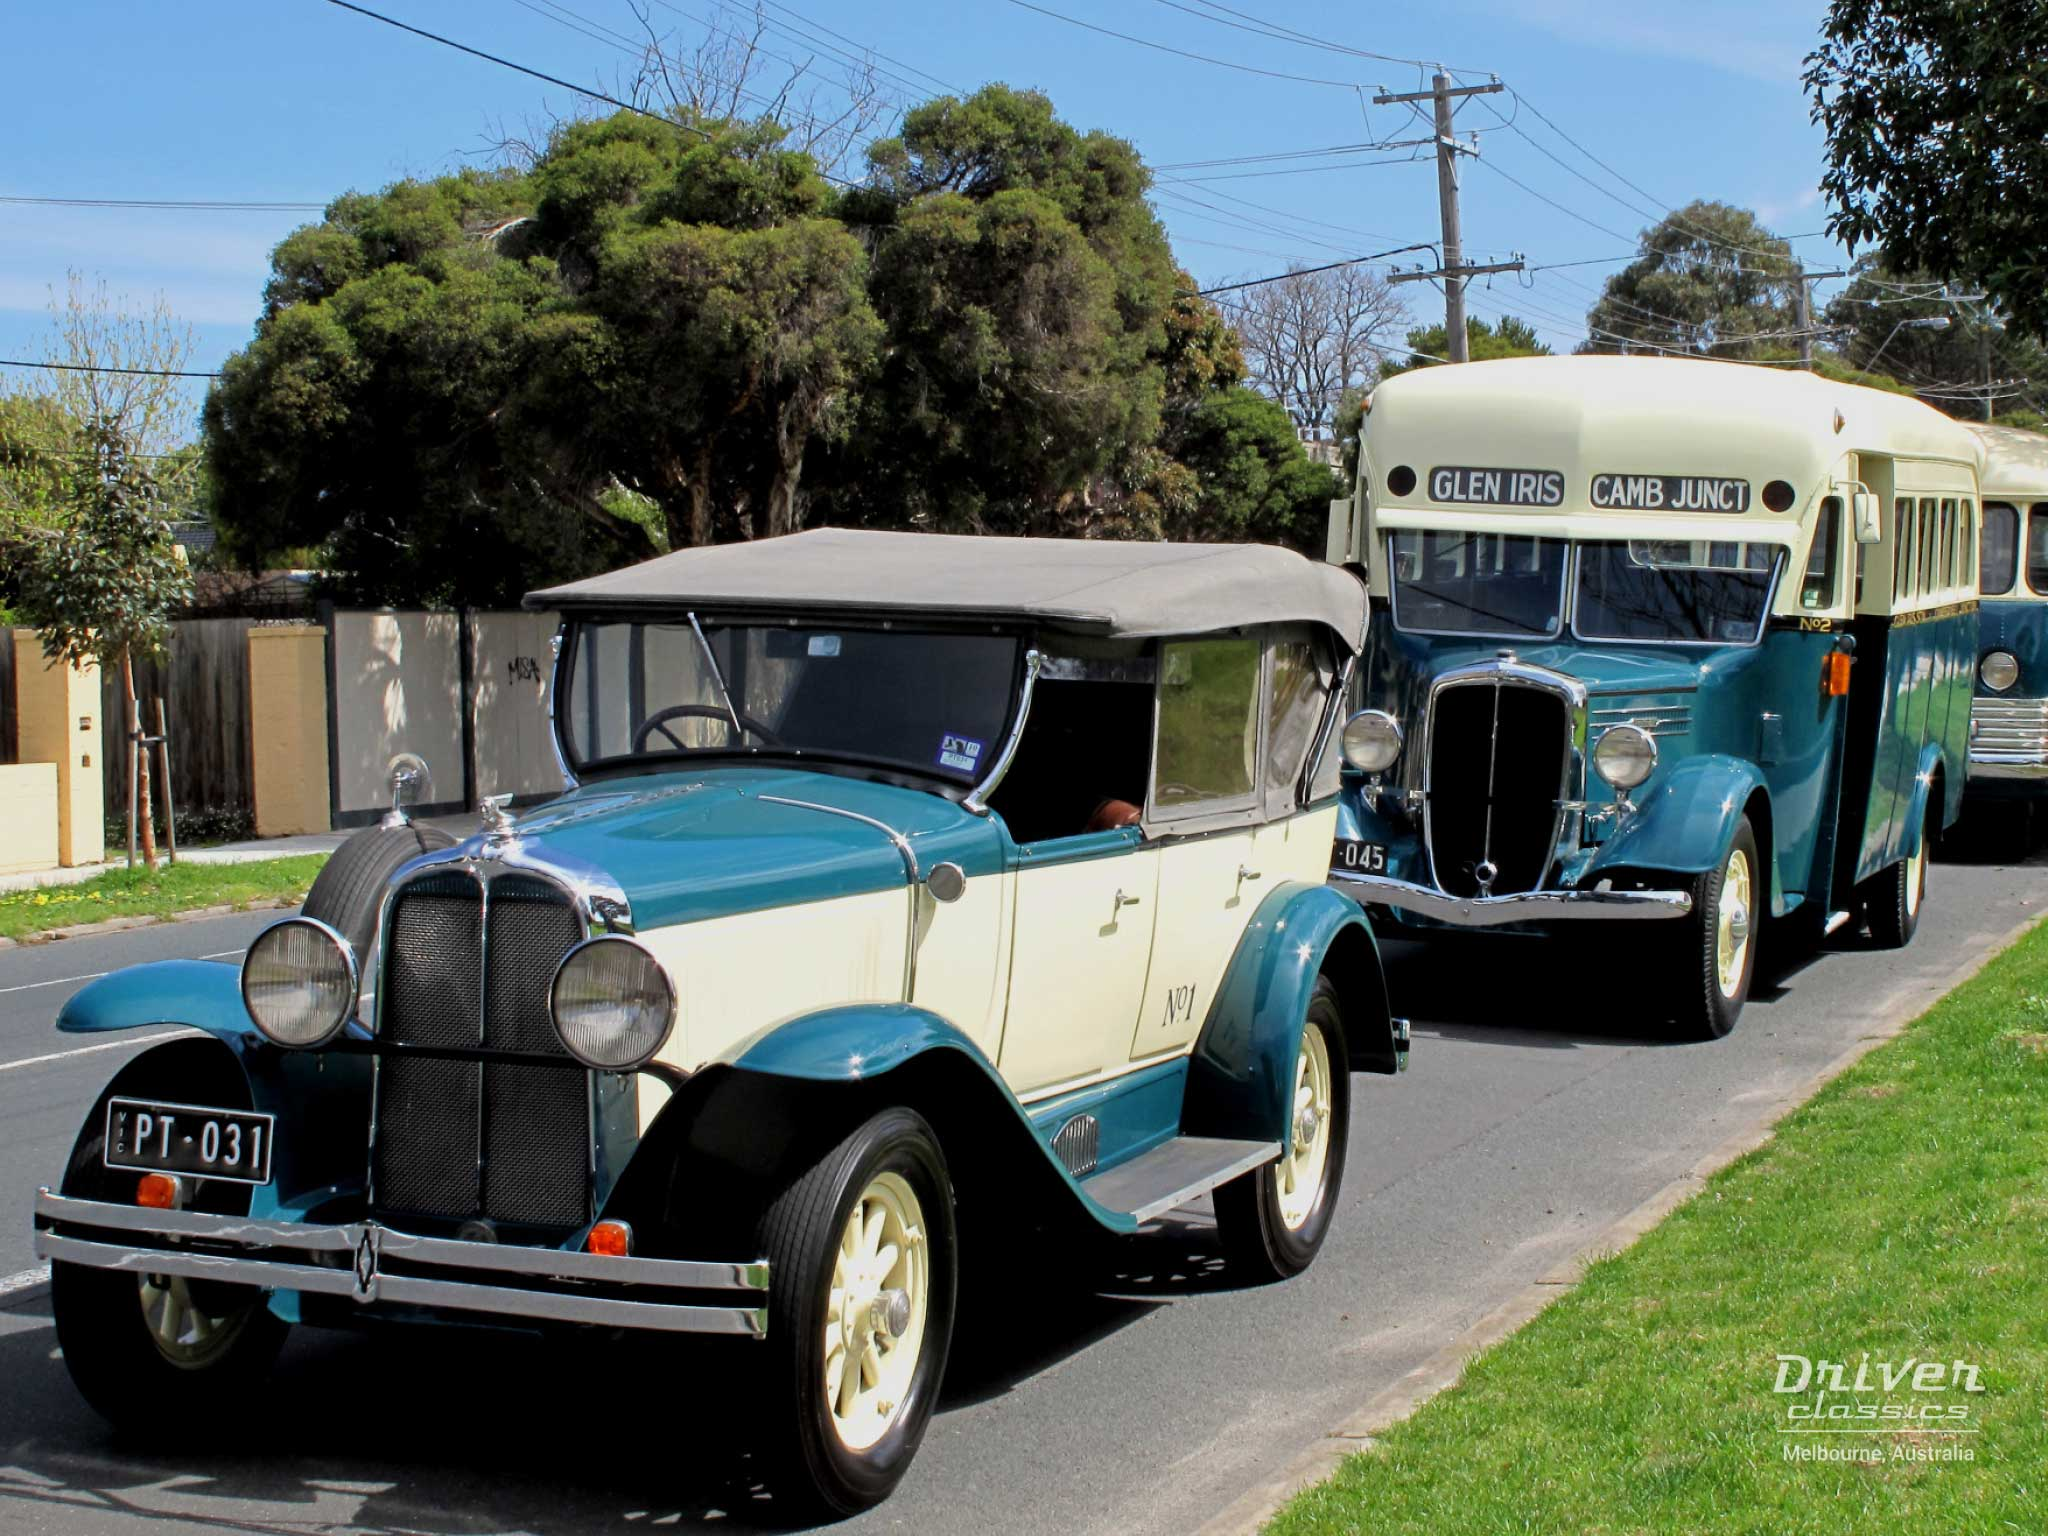 1930 Pontiac in front of 1936 Federal Bus and 1947 Bedford OB, photo taken August 2015